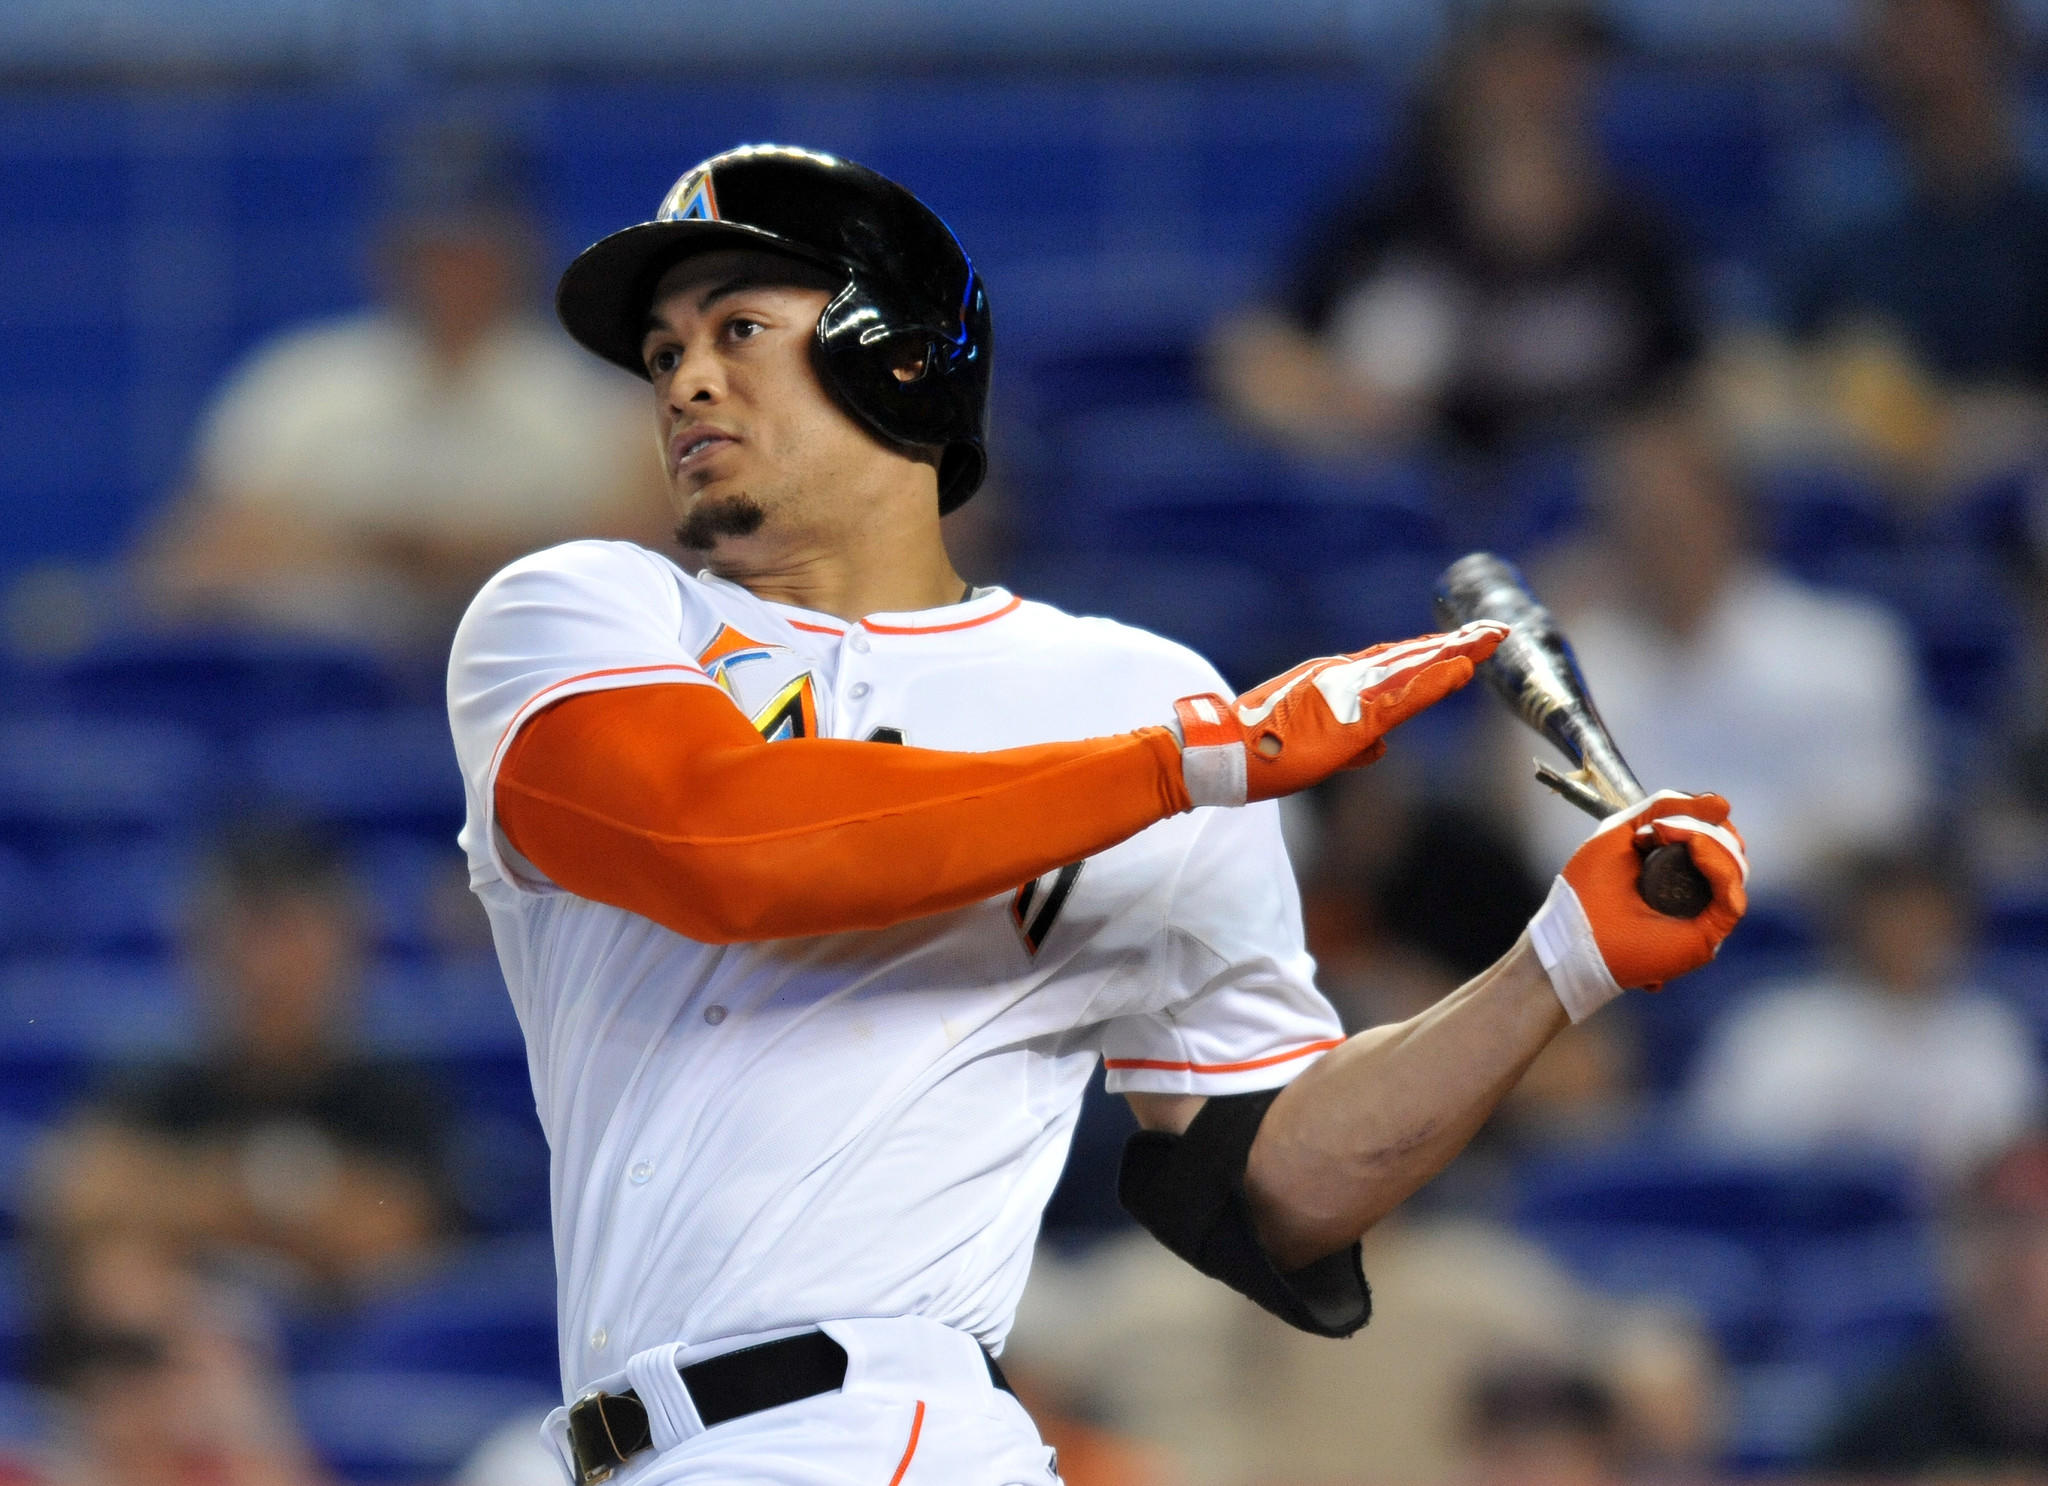 Marlins outfielder Giancarlo Stanton avoid arbitration, agreeing to a one-year, $6.5 million deal Friday.